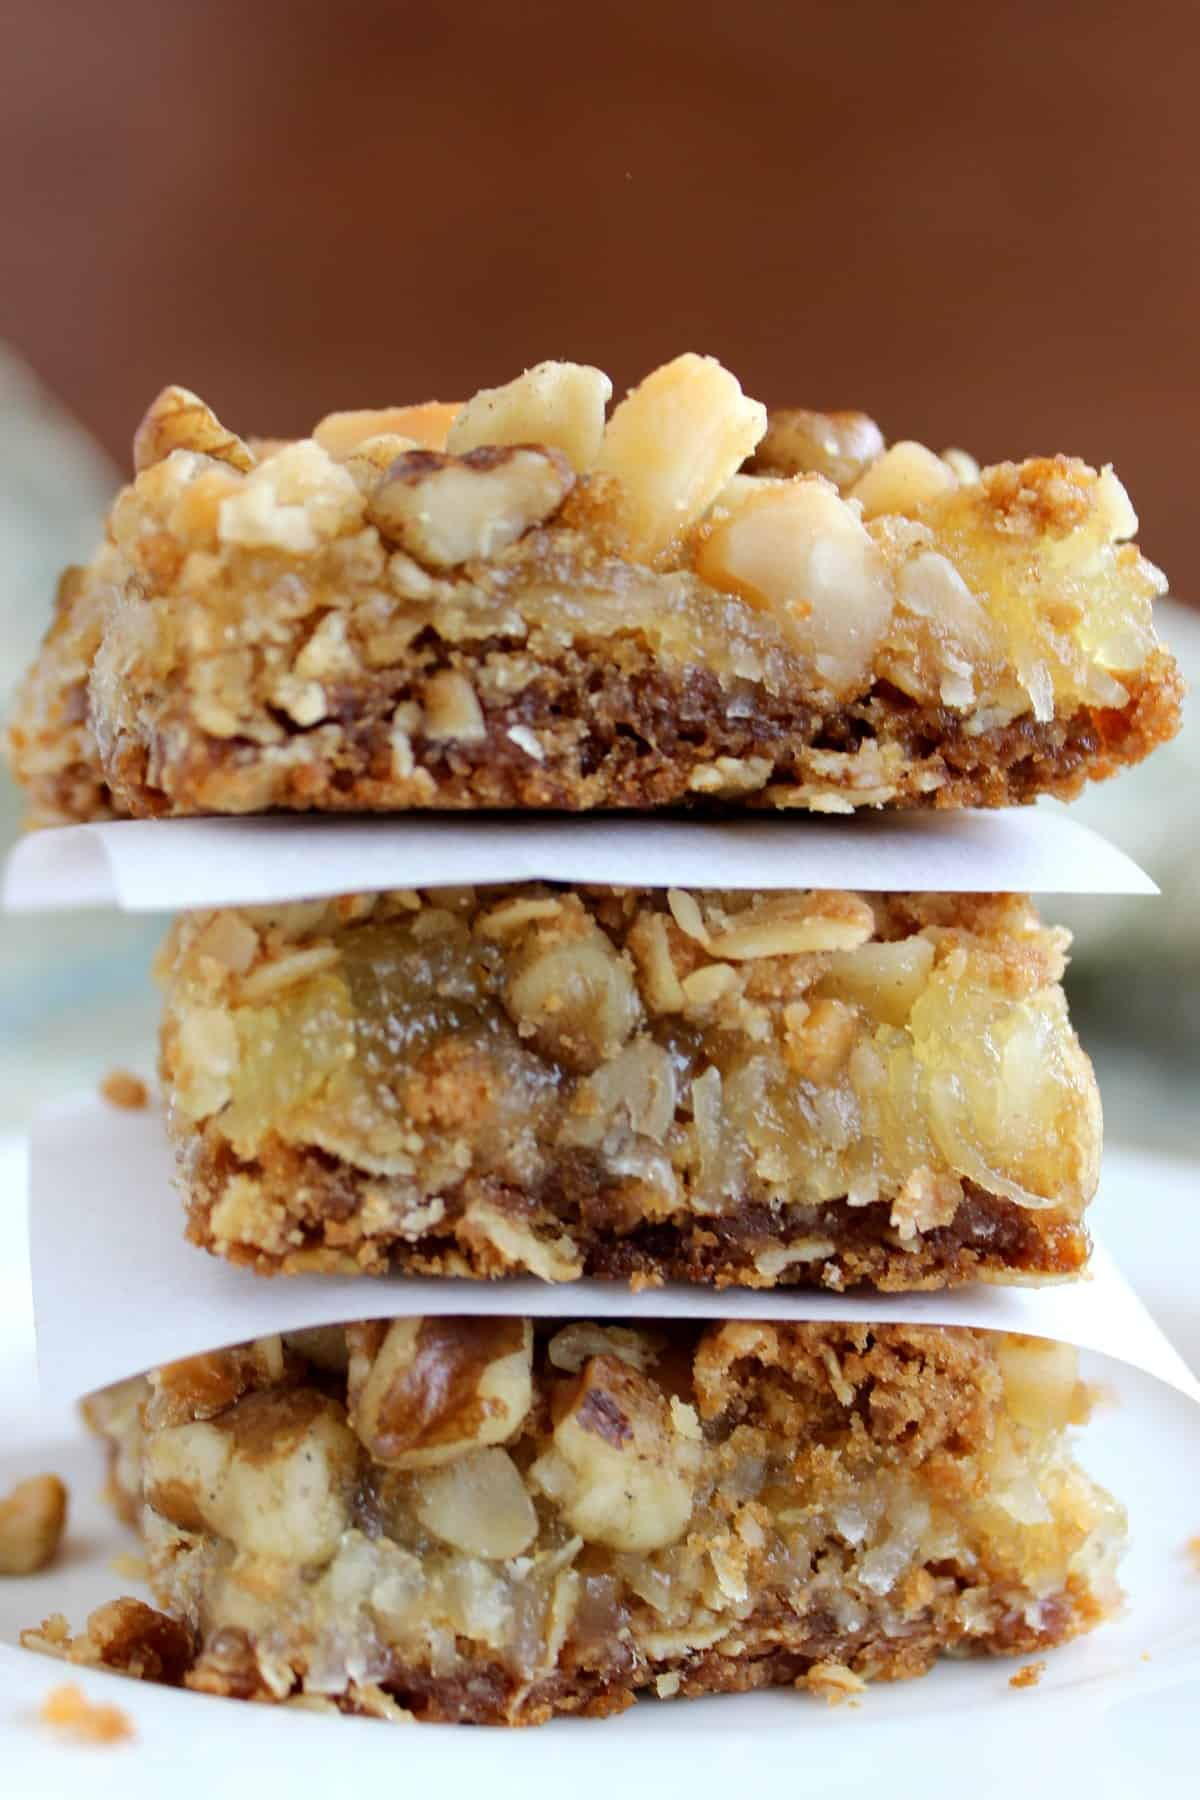 Extreme close up of three pina colada bars Stacked on top of each other with creamy yellow jam centers, oat bottoms and nut tops.